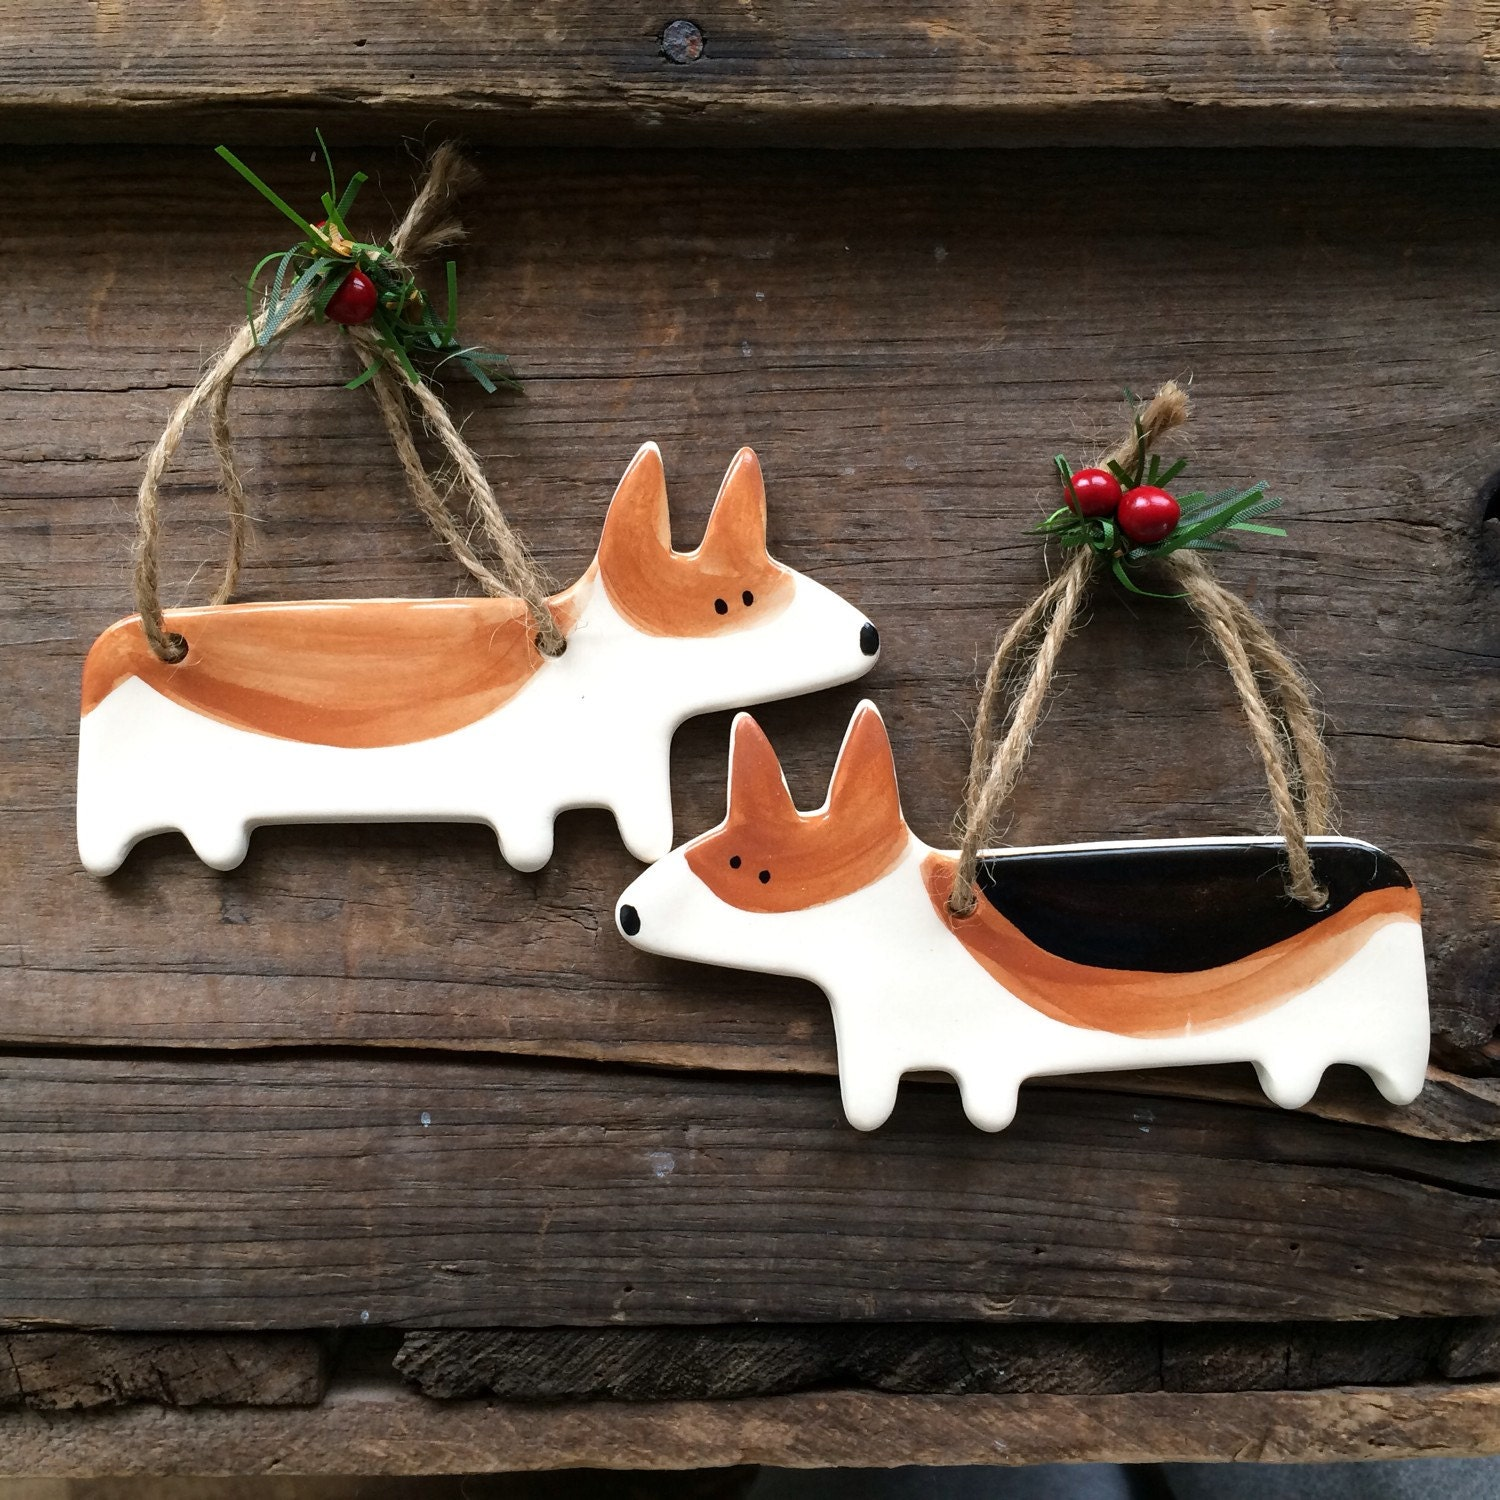 Personalized pet ornament - Dog Ornament Corgi Dog Ornament Welsh Corgi Ornament Corgi Christmas Ornament Handmade